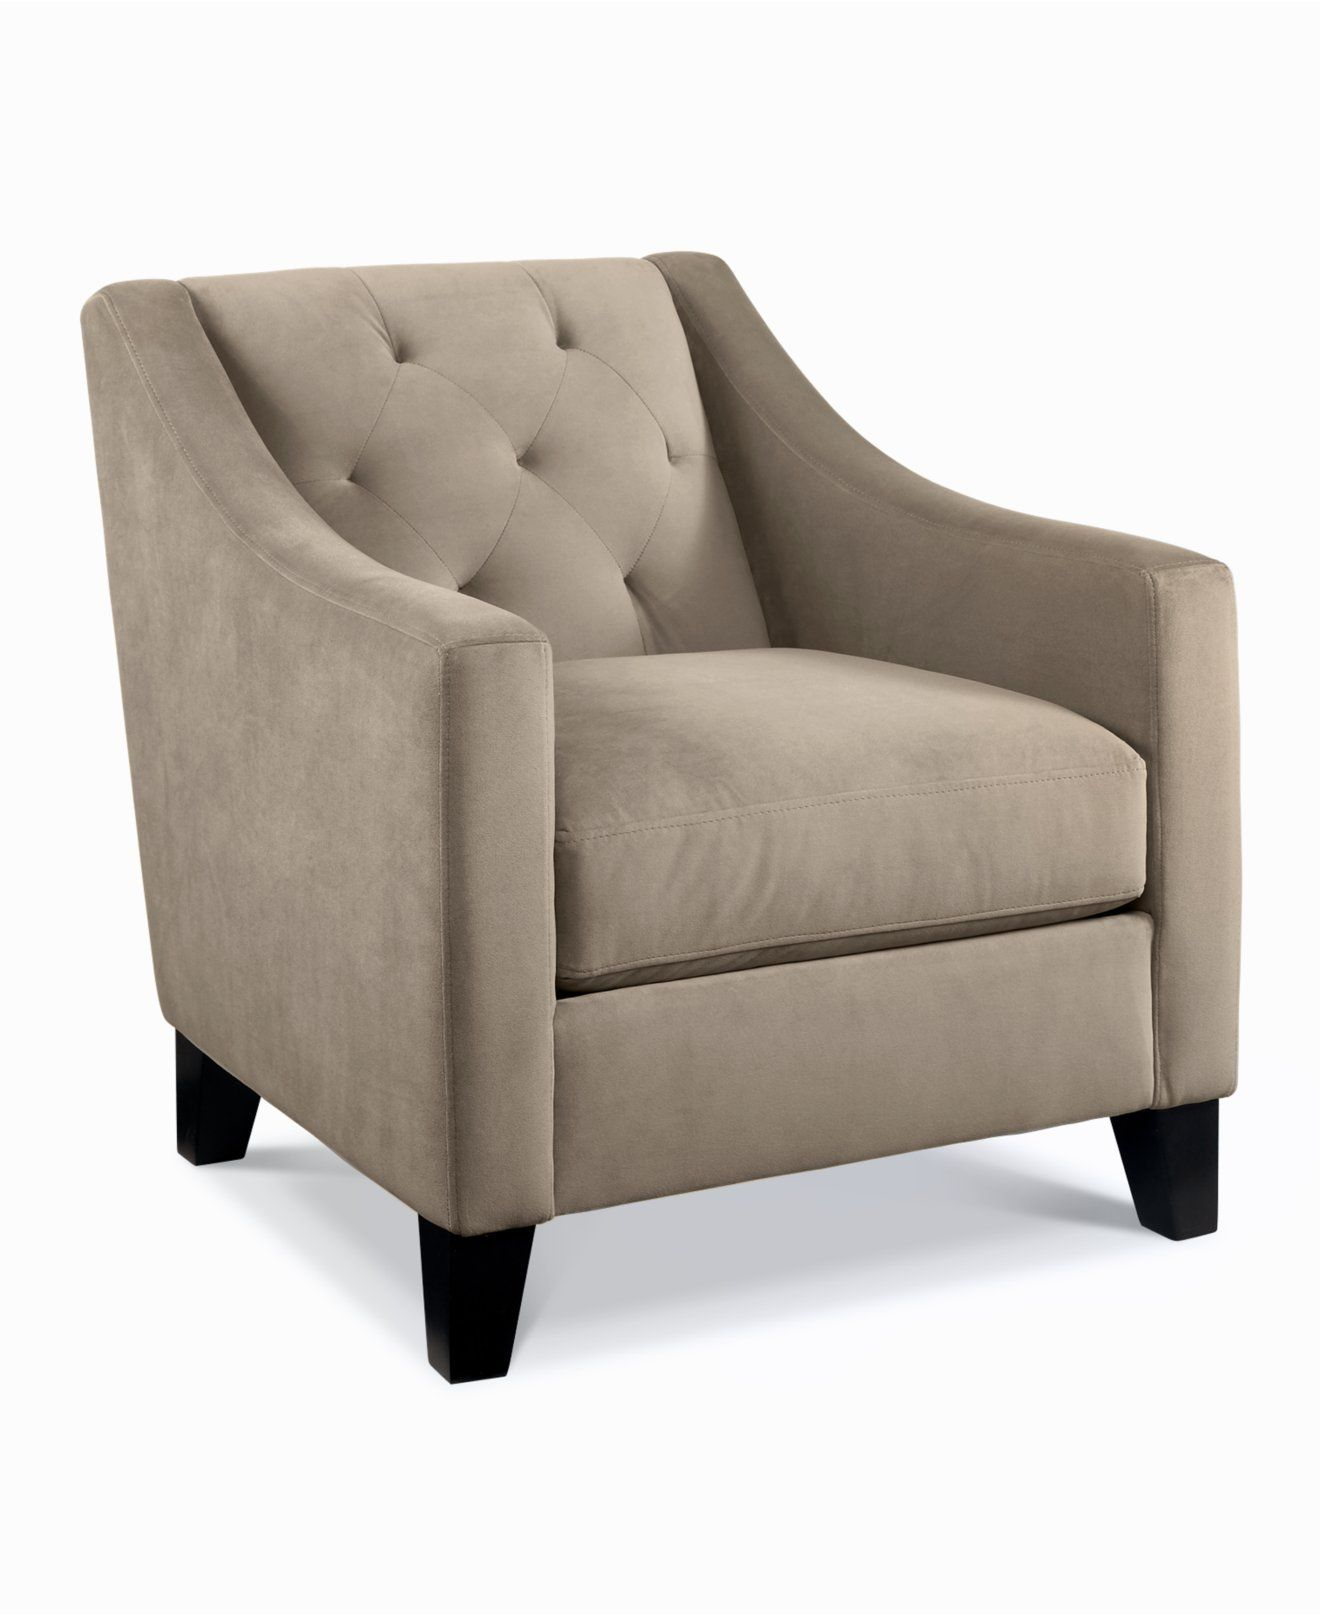 chloe velvet tufted chair - living room furniture - furniture